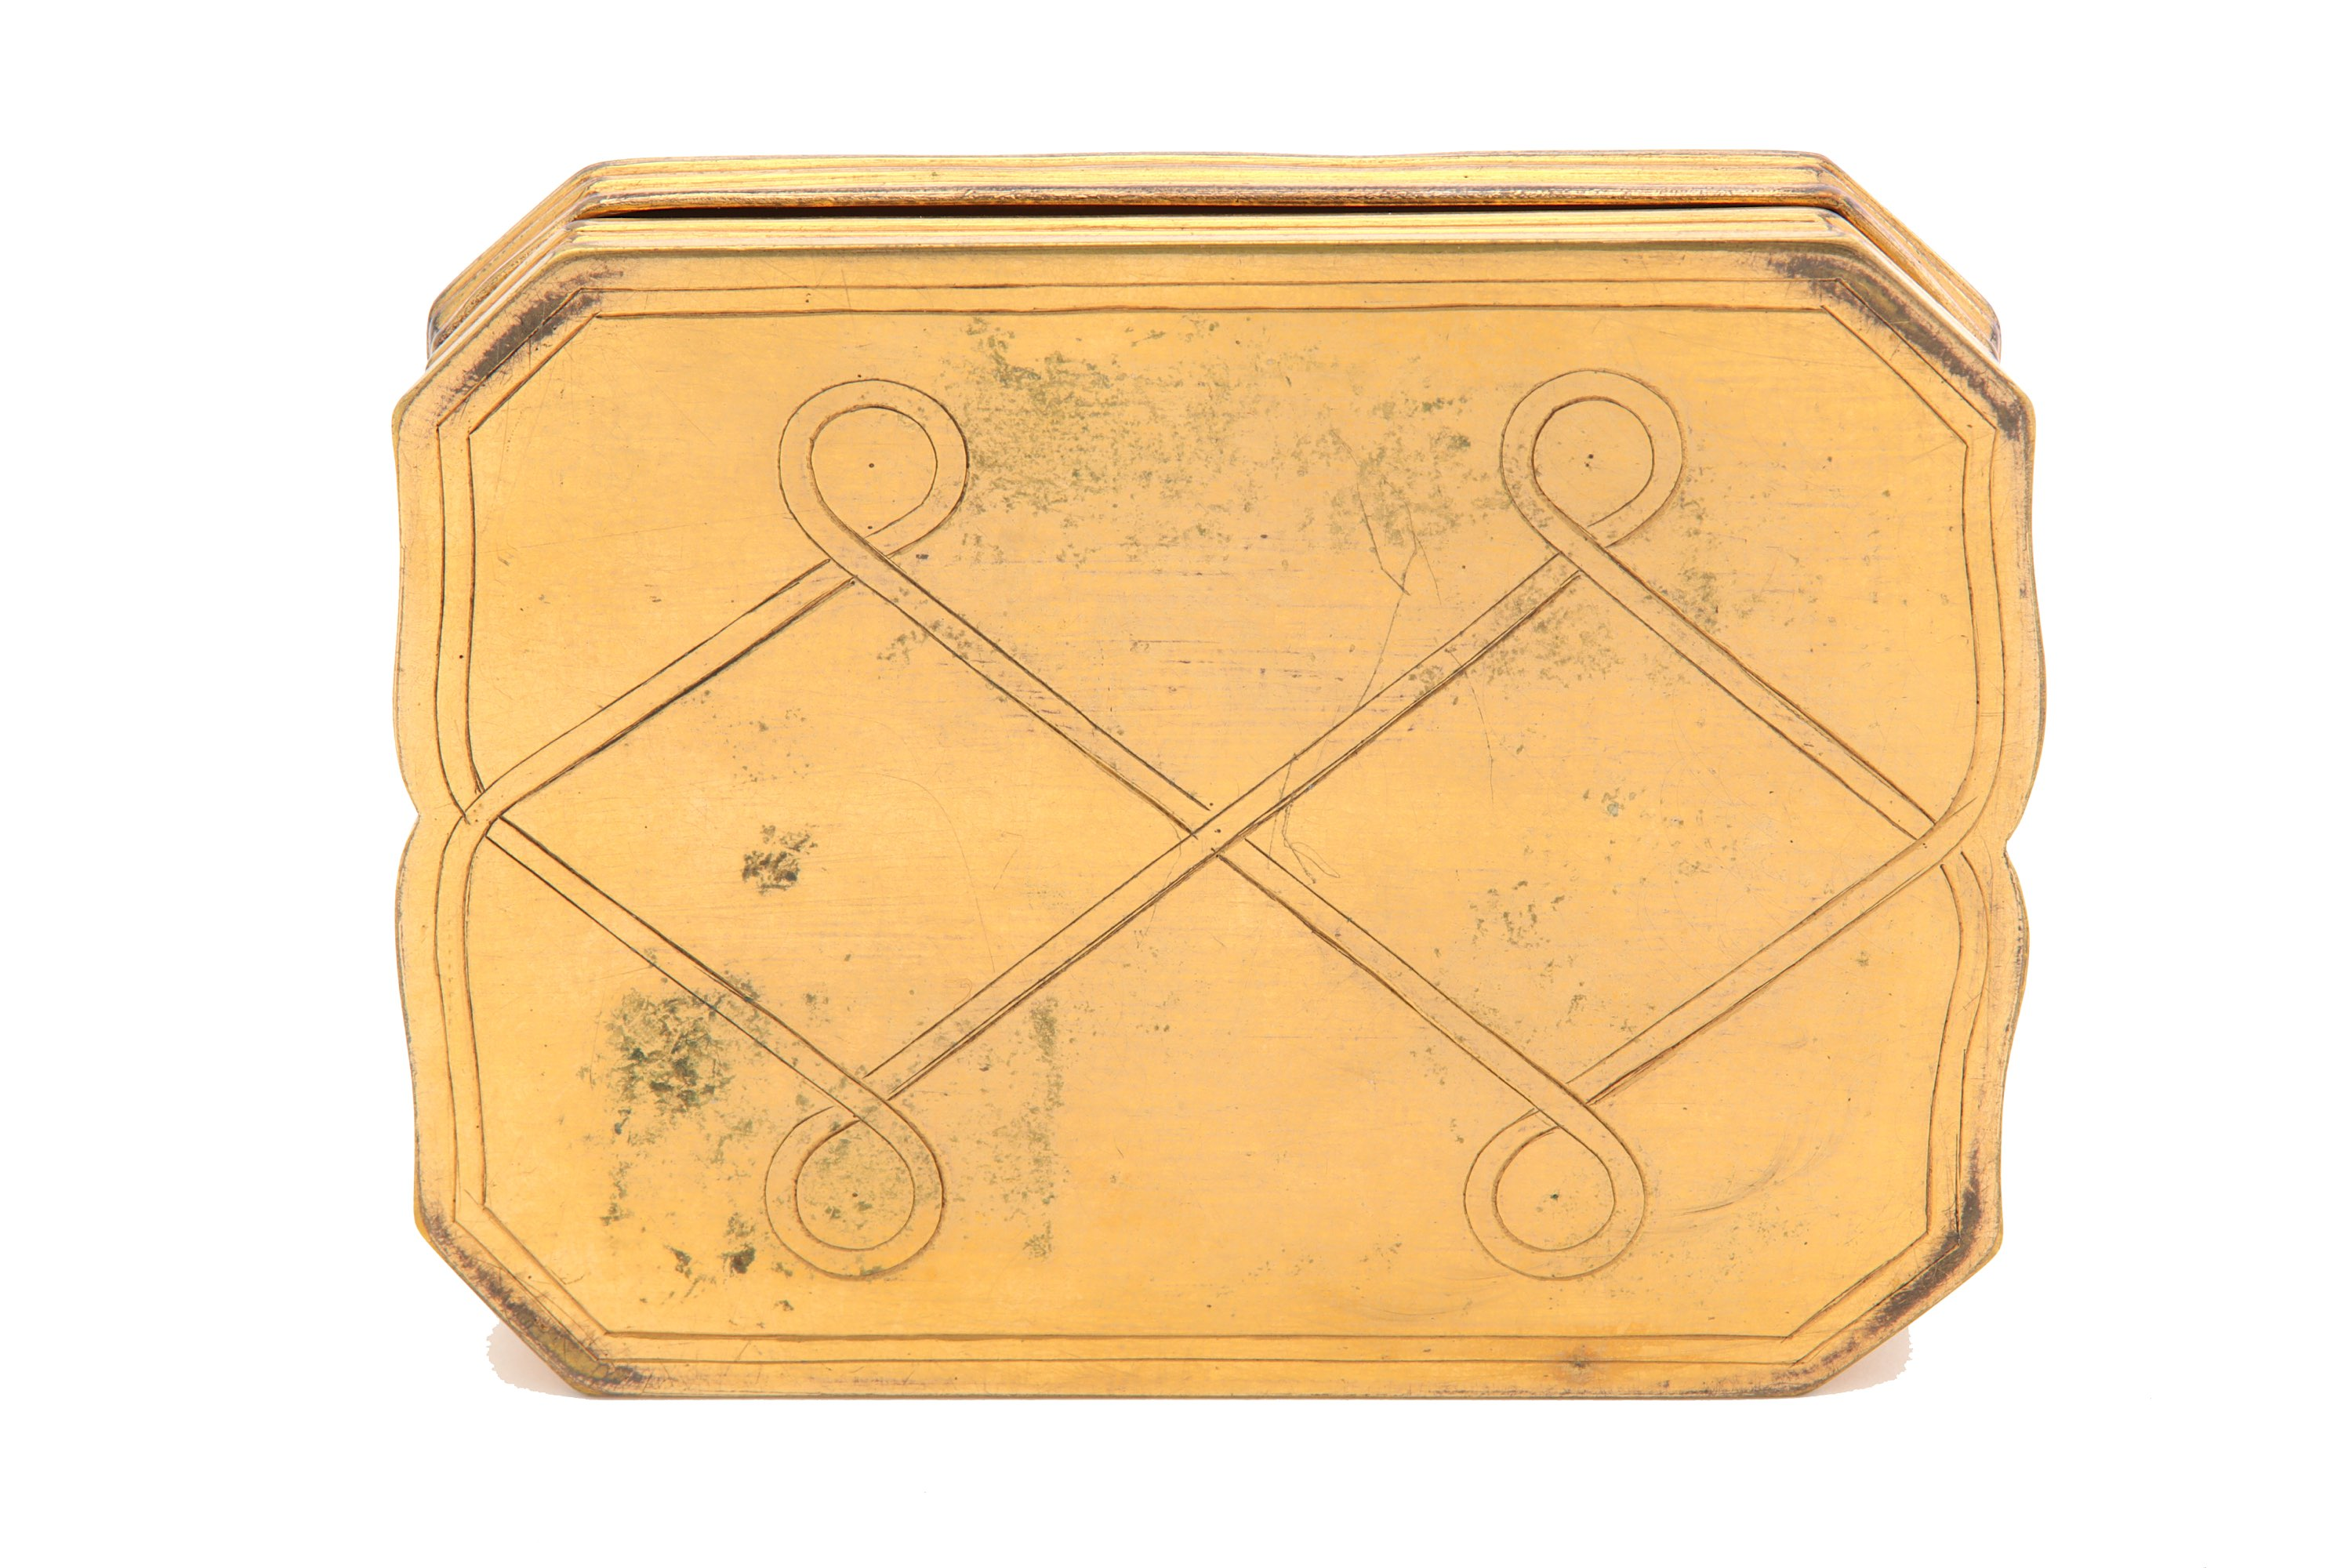 Lot 54 - An early to mid-18th century tortoiseshell pique and gilt metal snuff box, Continental circa 1720-40